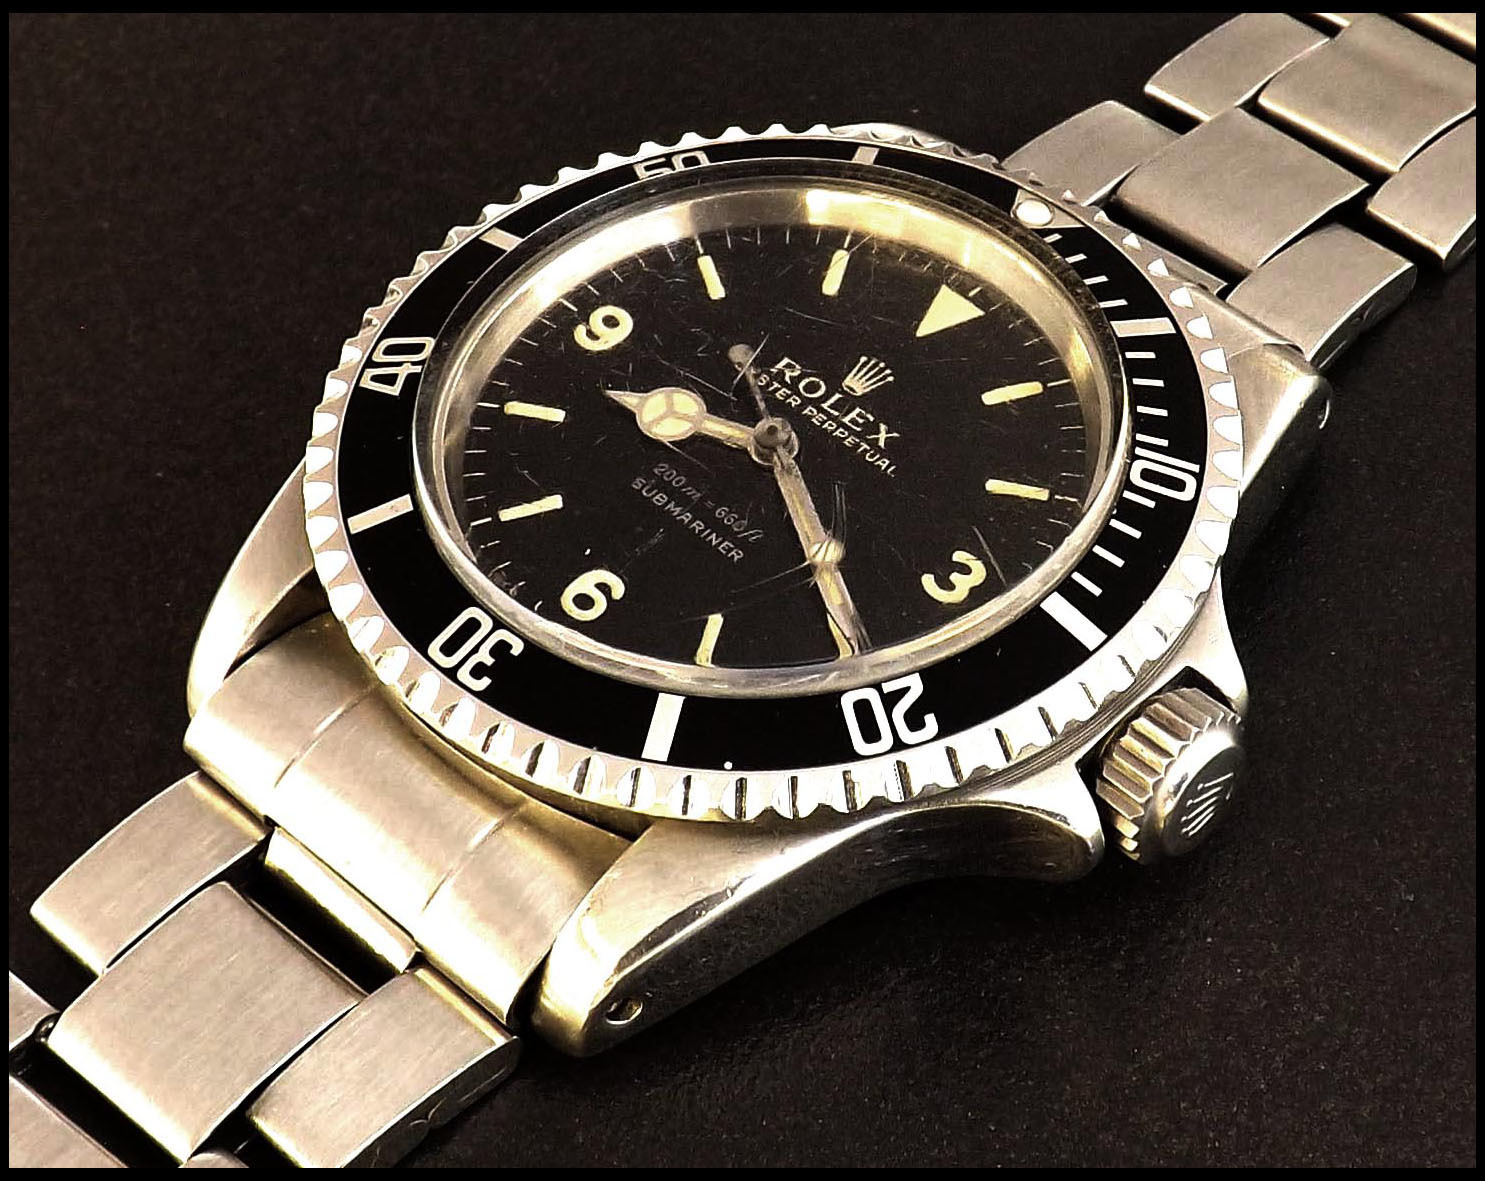 Auction of rare Rolex Oyster Perpetual Submariner watch, Wiltshire, UK - Feb 2017